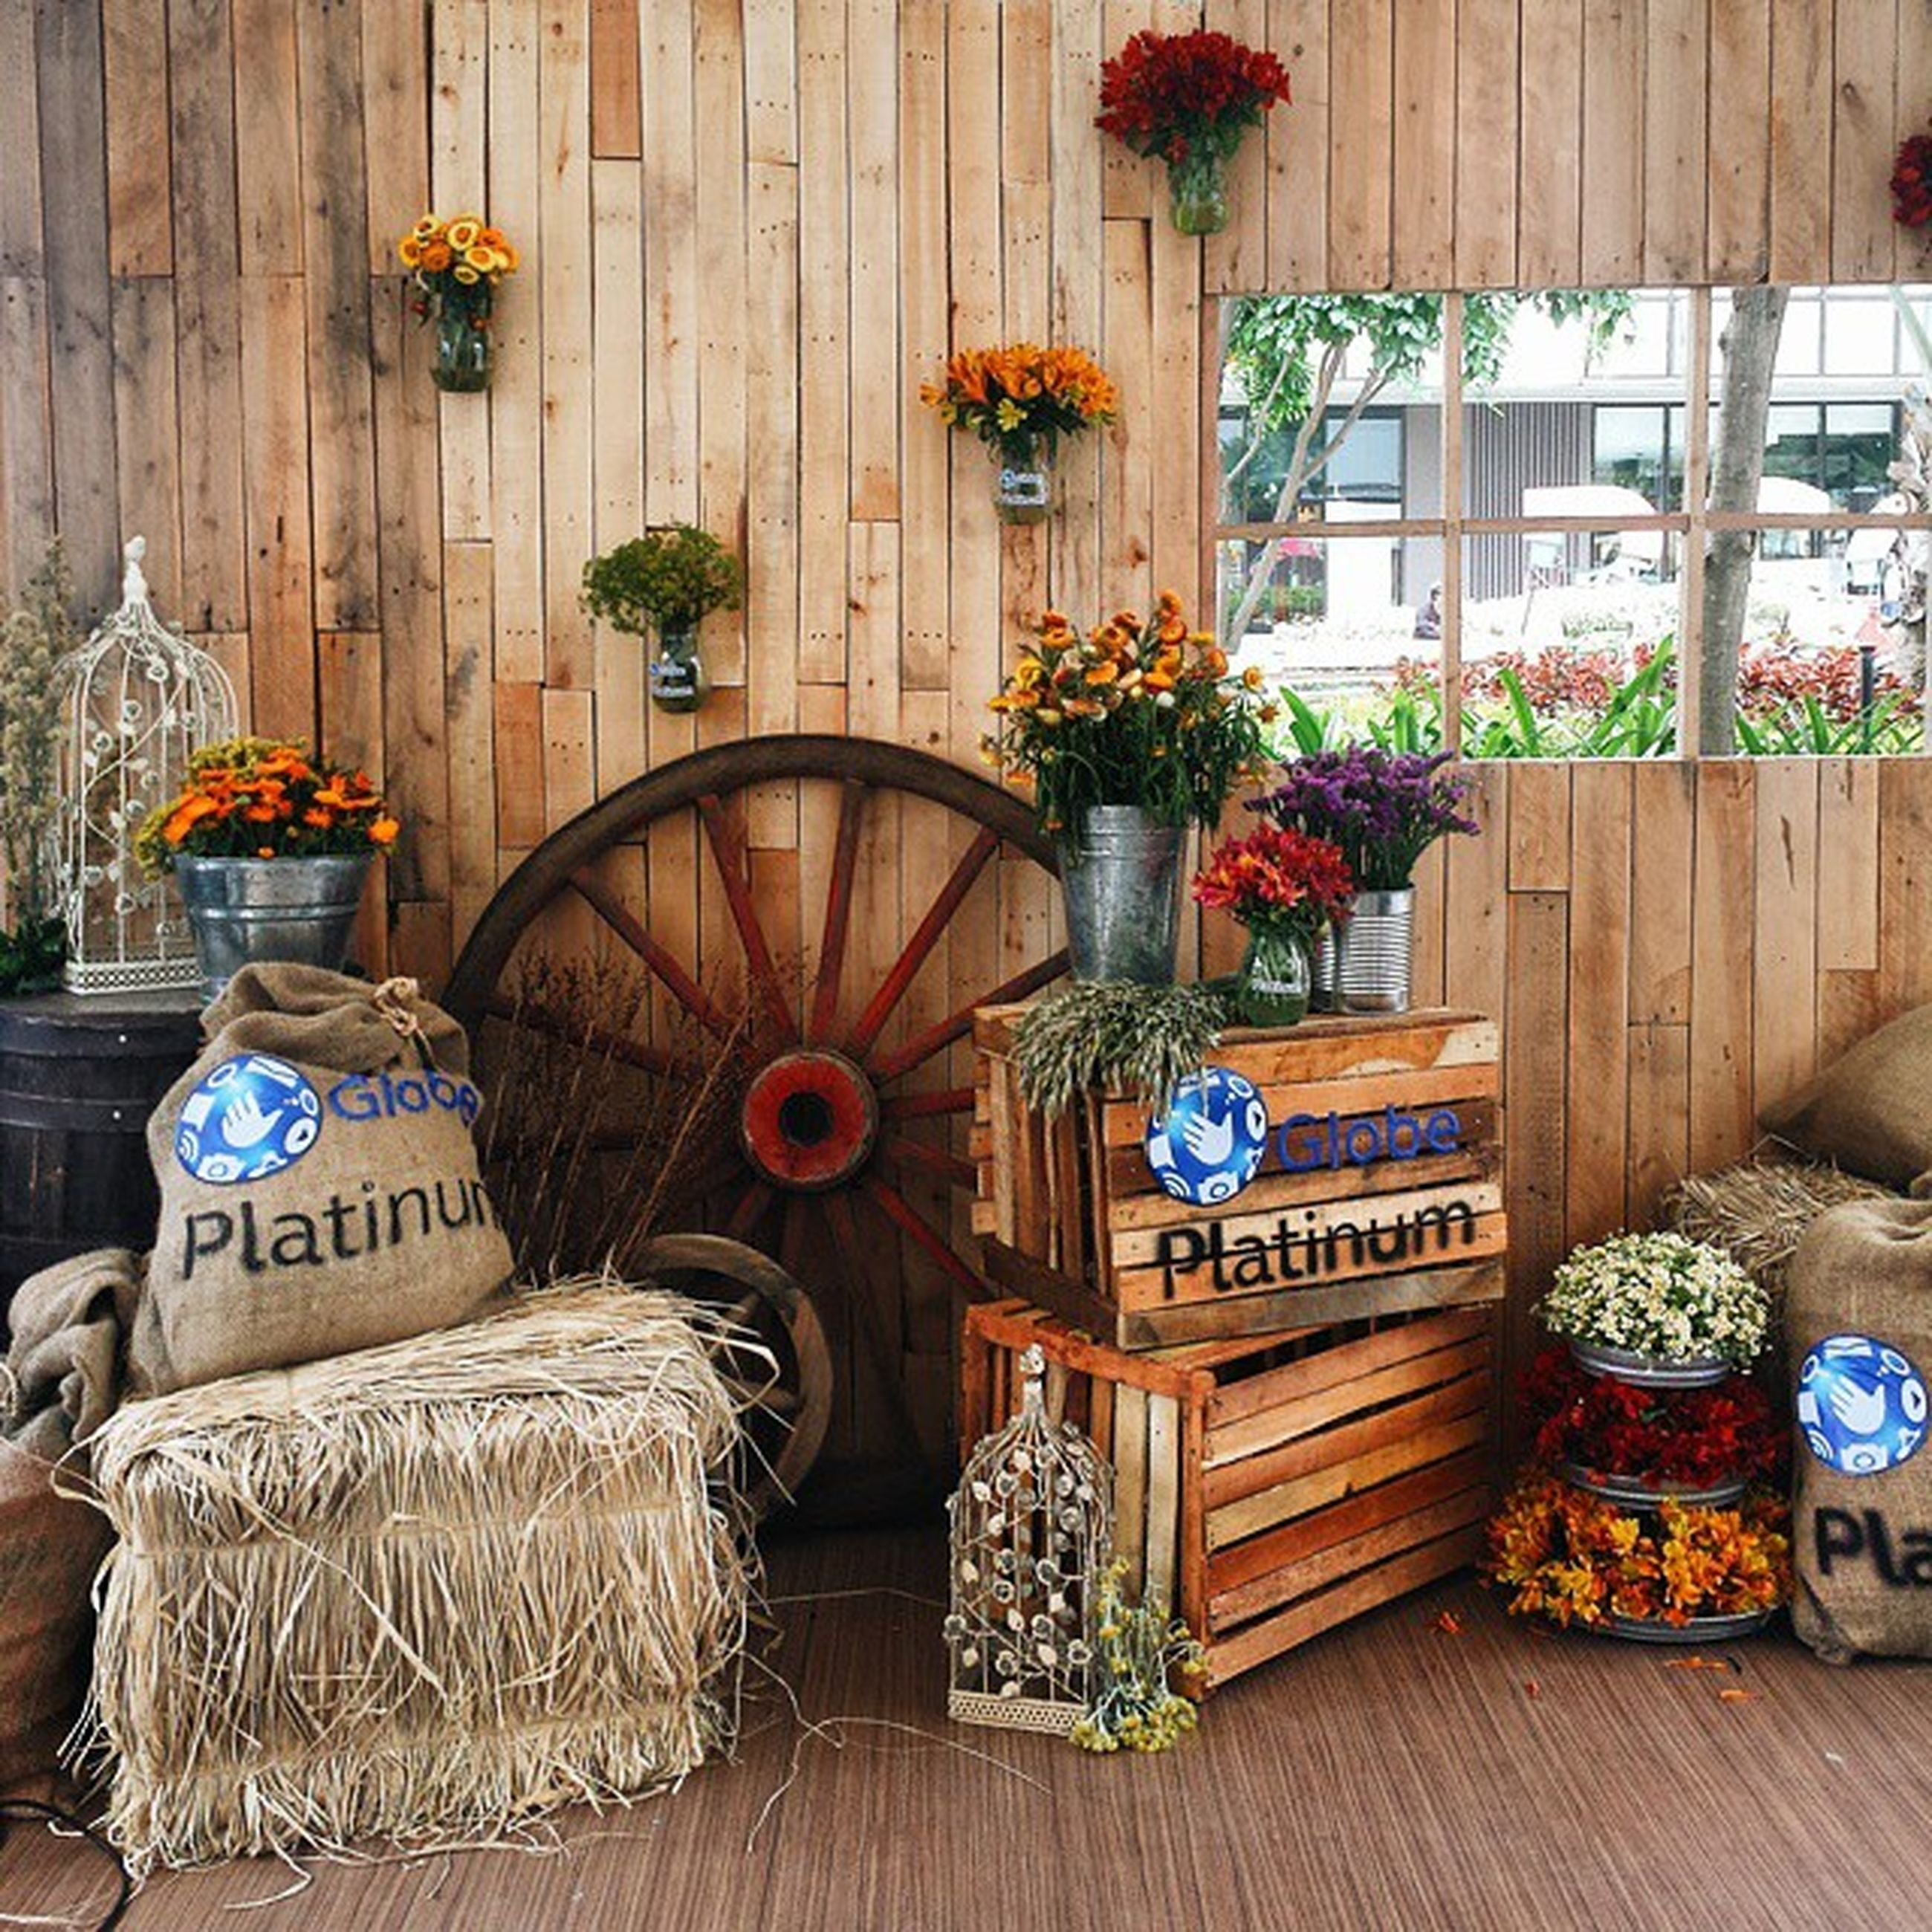 wood - material, flower, potted plant, text, variation, wooden, decoration, plant, arrangement, wall - building feature, non-western script, choice, hanging, no people, multi colored, indoors, table, large group of objects, day, communication